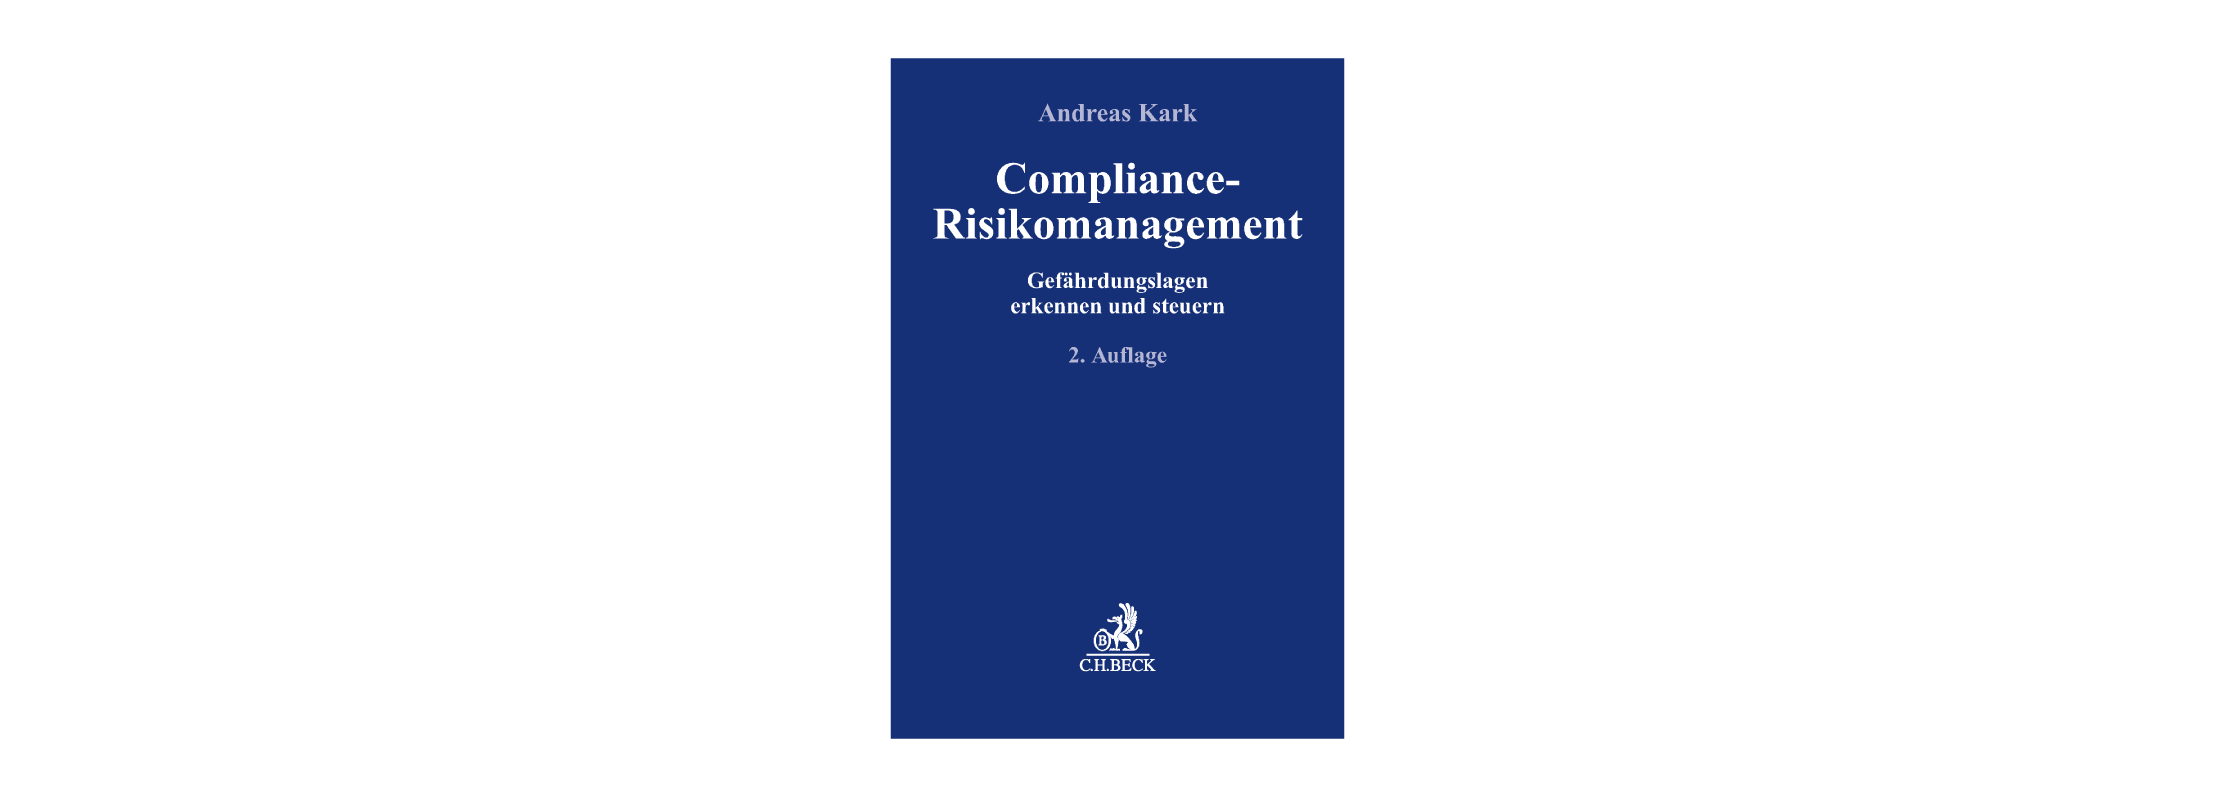 Kark, Compliance-Risikomanagement, Verlag CH Beck, 2. Aufl. 2019